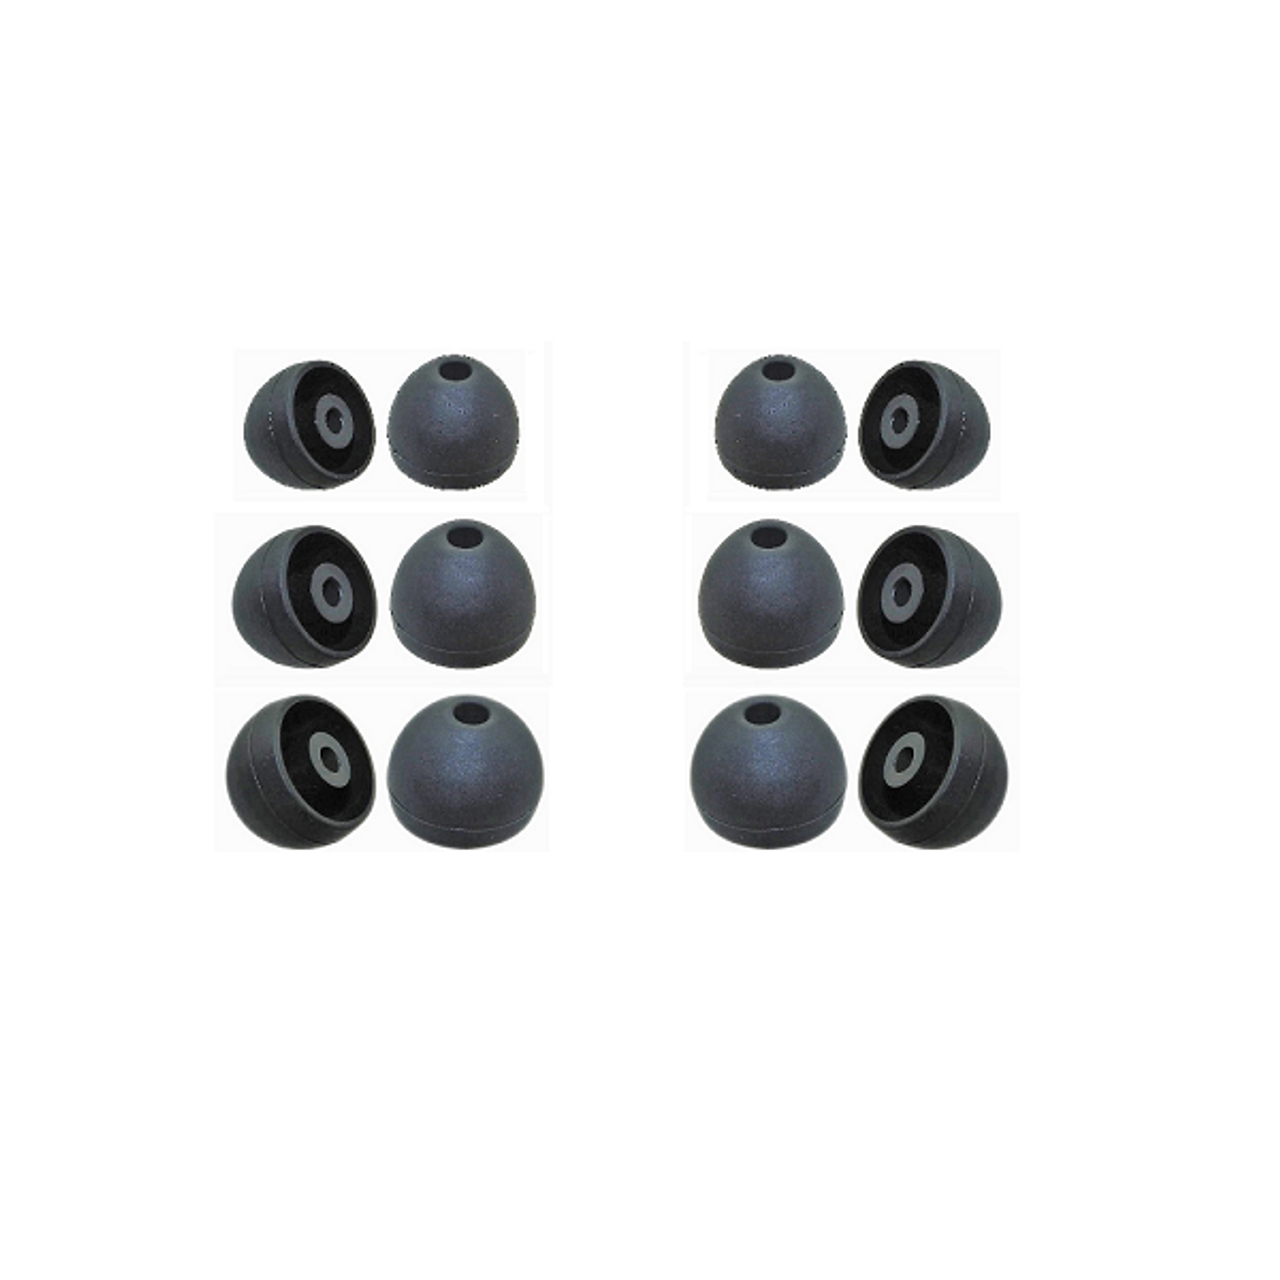 6x UNIVERSAL SILICONE EARPHONE TIPS REPLACEMENT SPARE EARBUDS IN-EAR BLACK MIXED